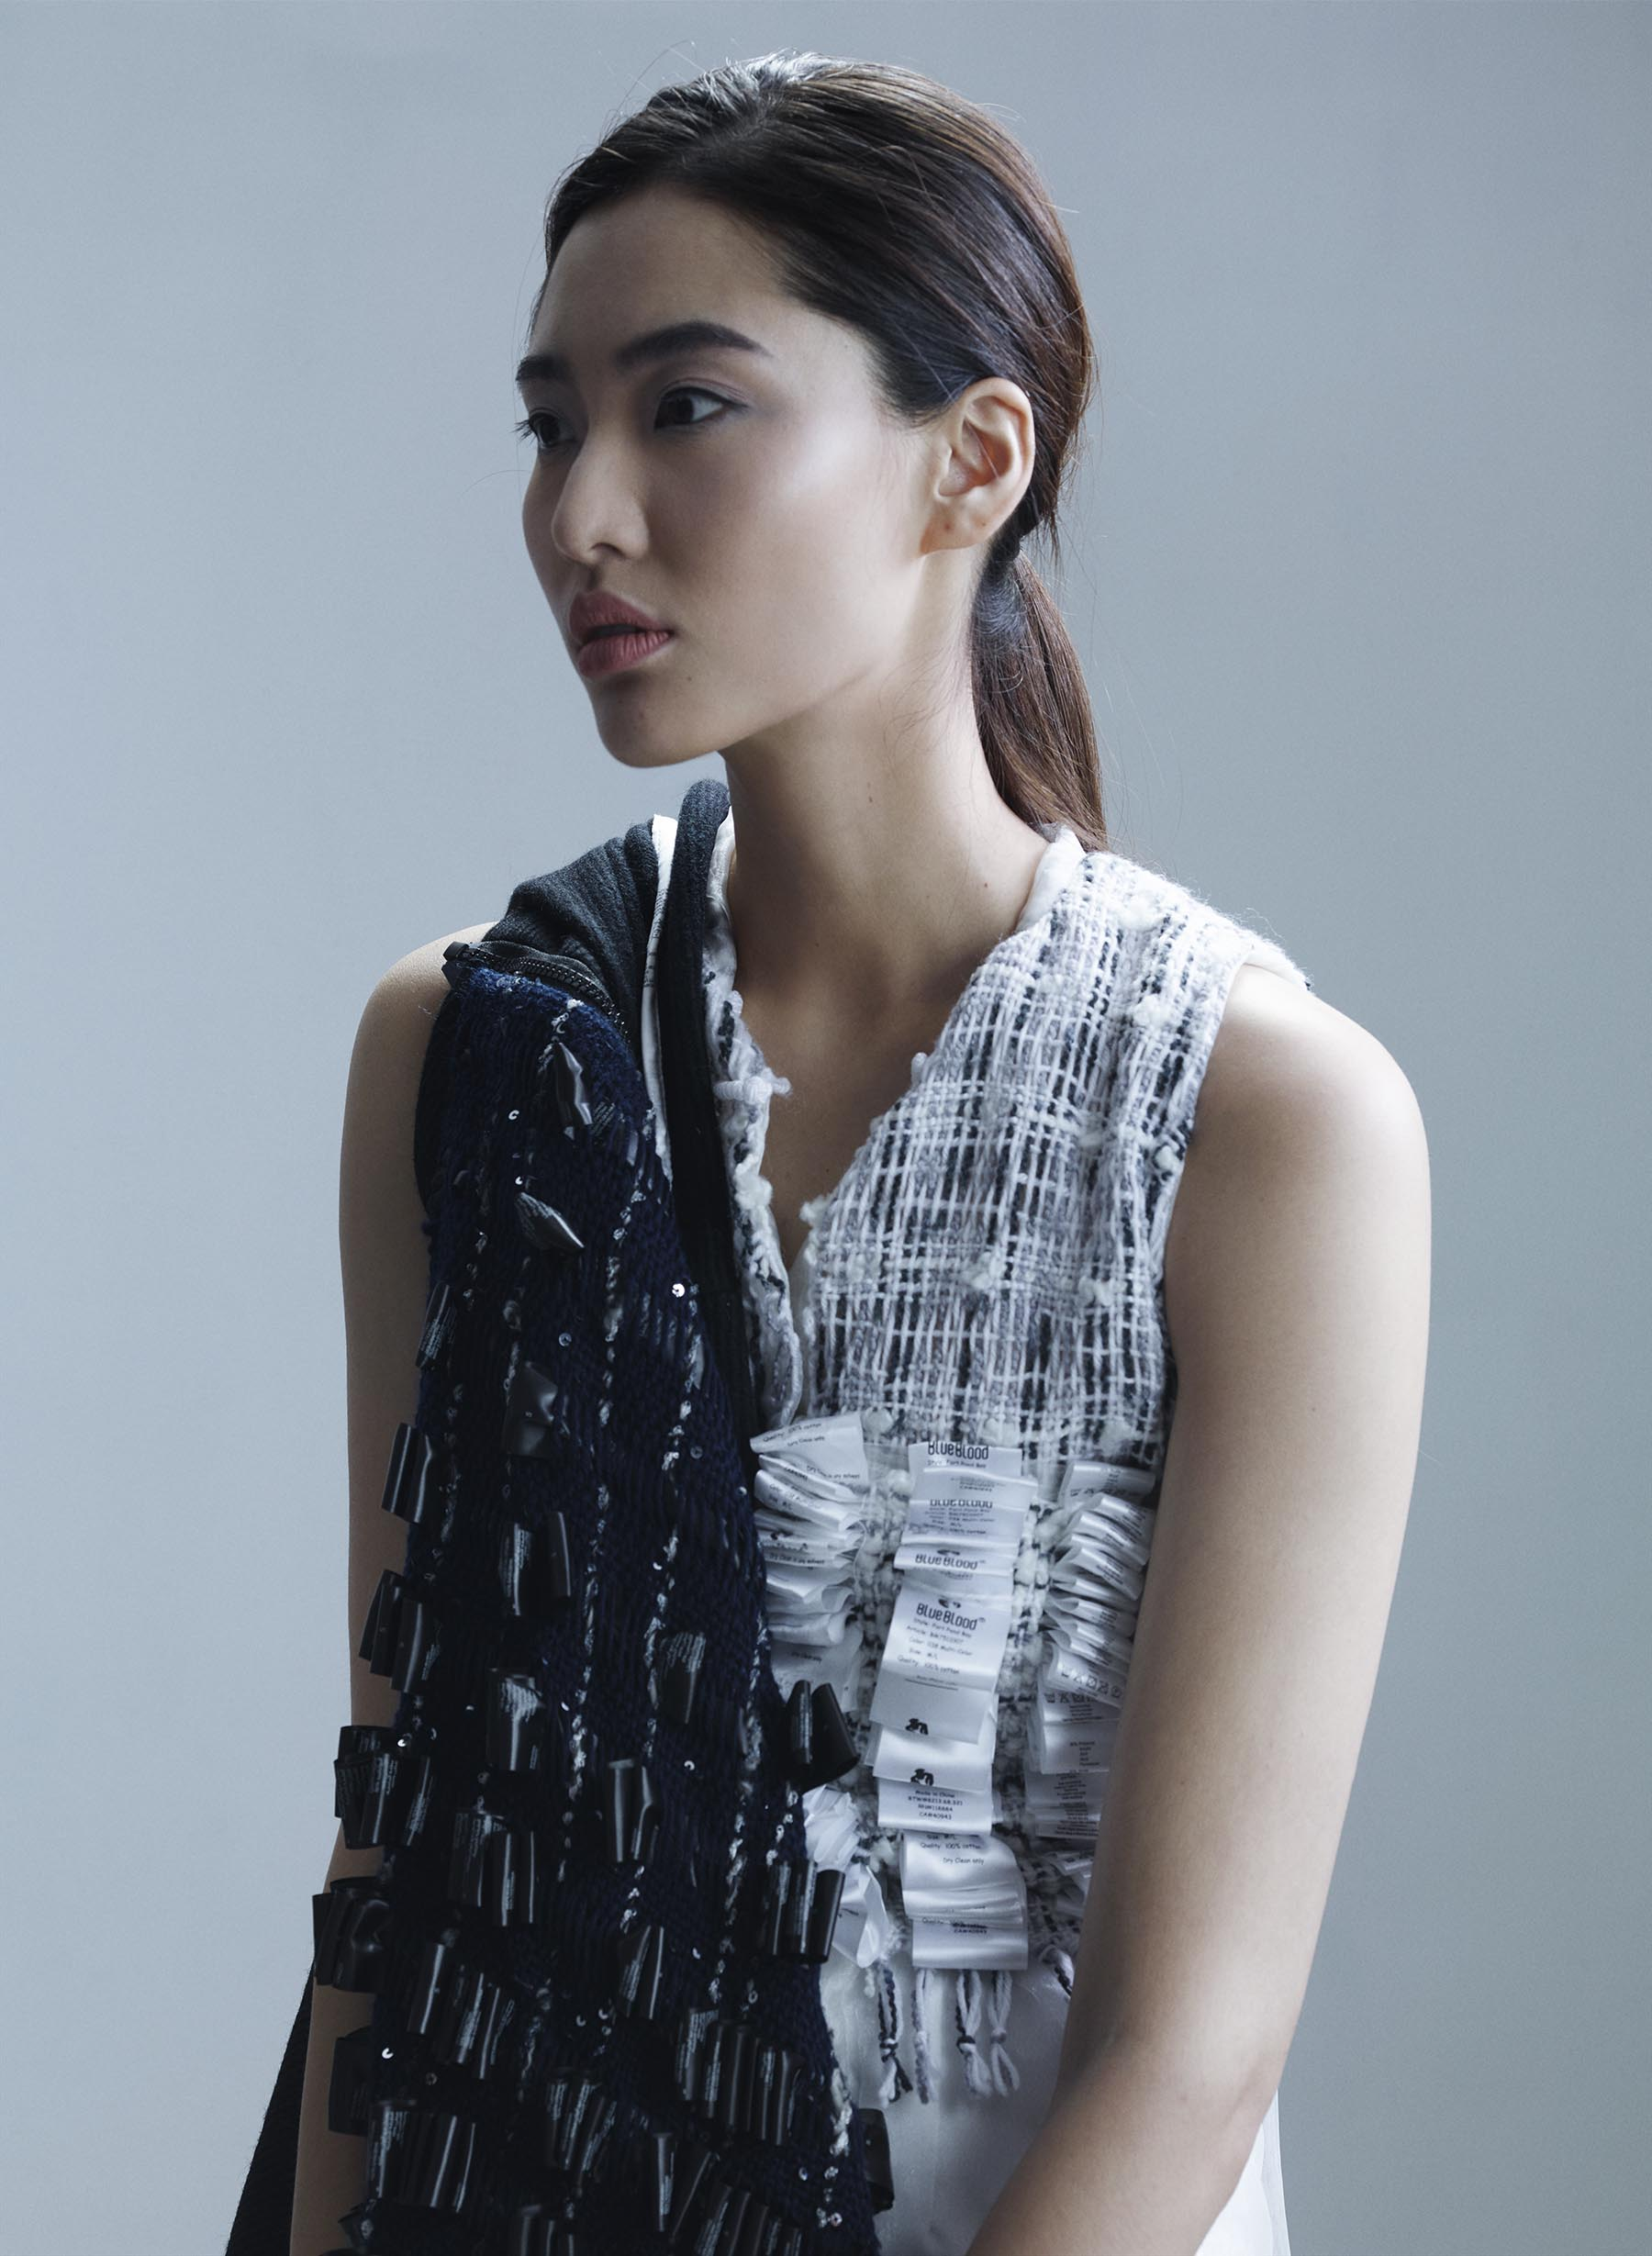 Esther Lui EcoChic Design ward 2015/16